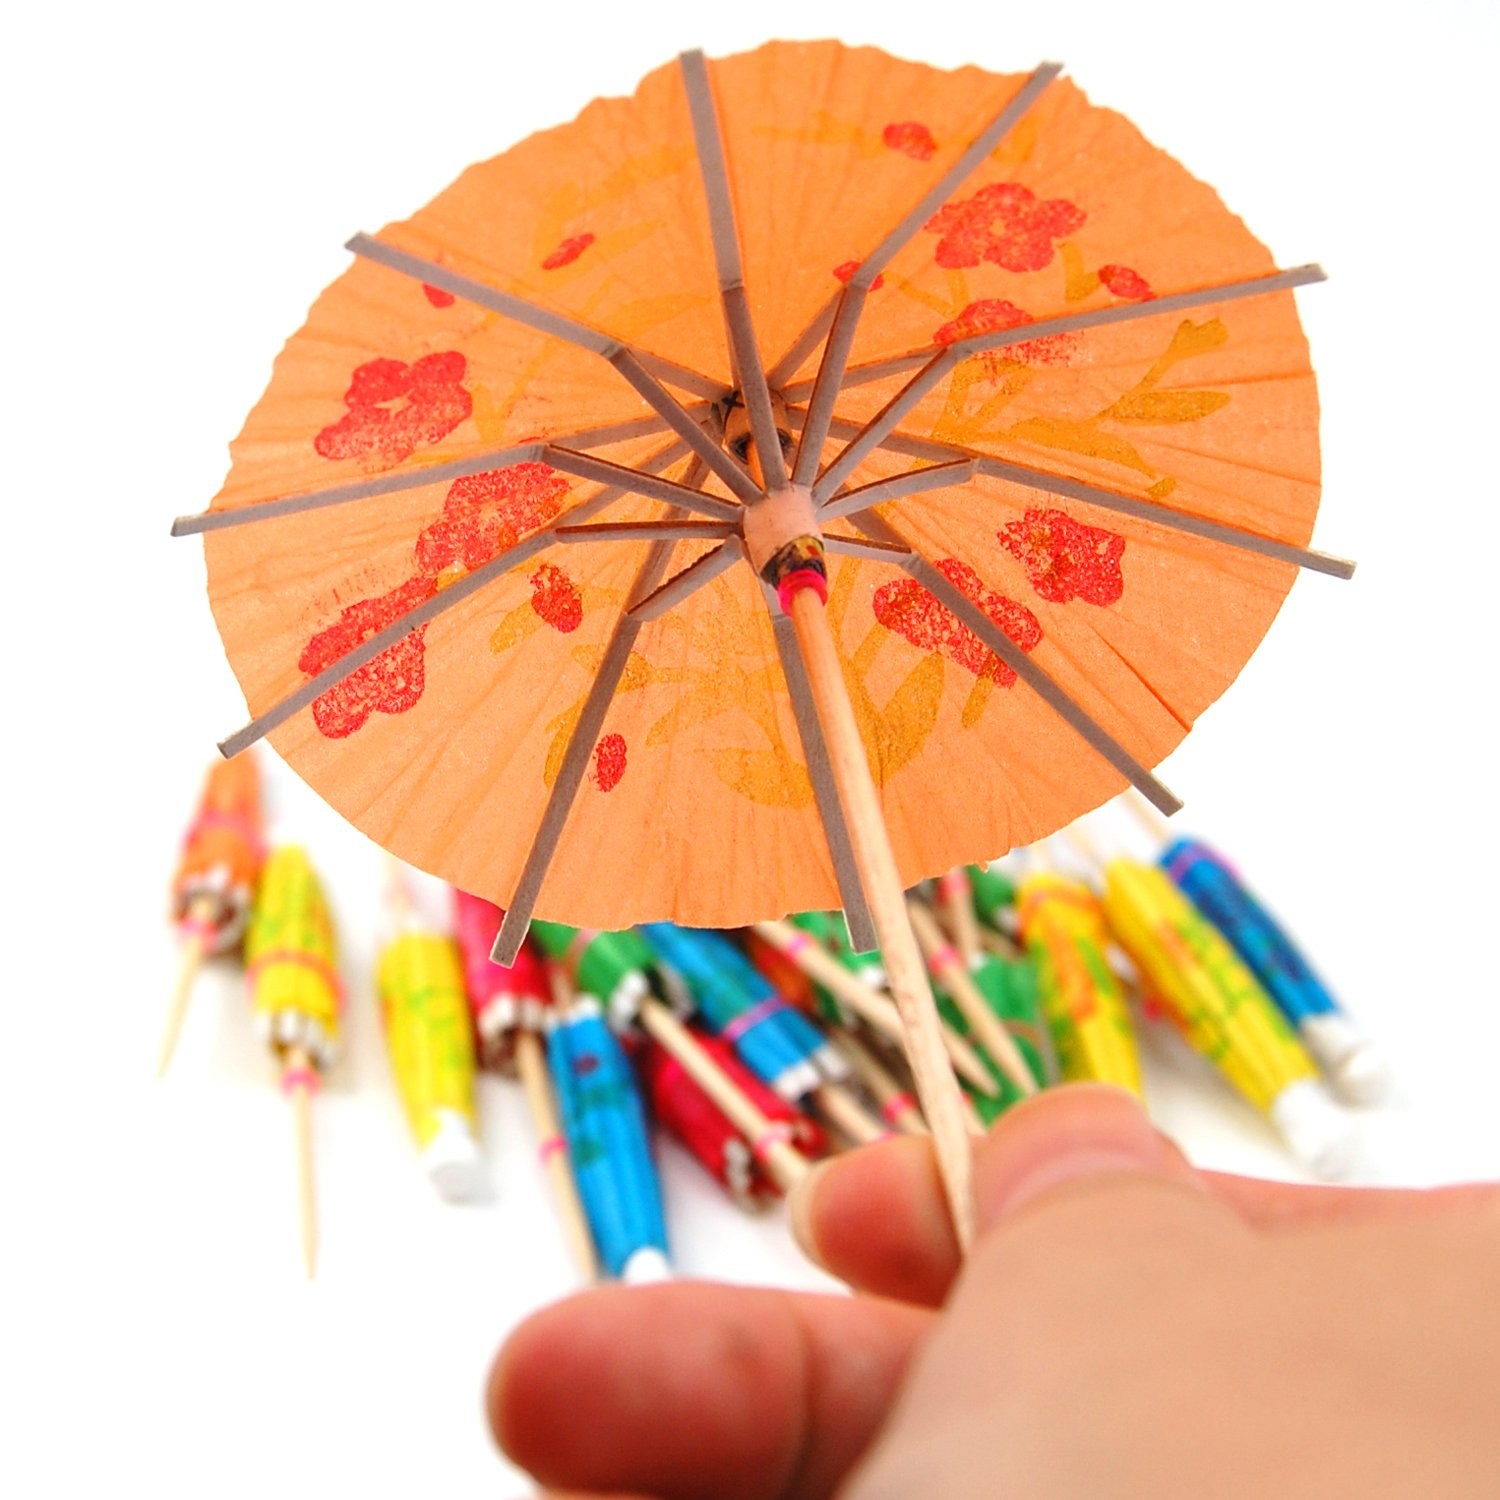 24 Coloured Paper Tail Umbrellas Parasols Drink Accessories Ws